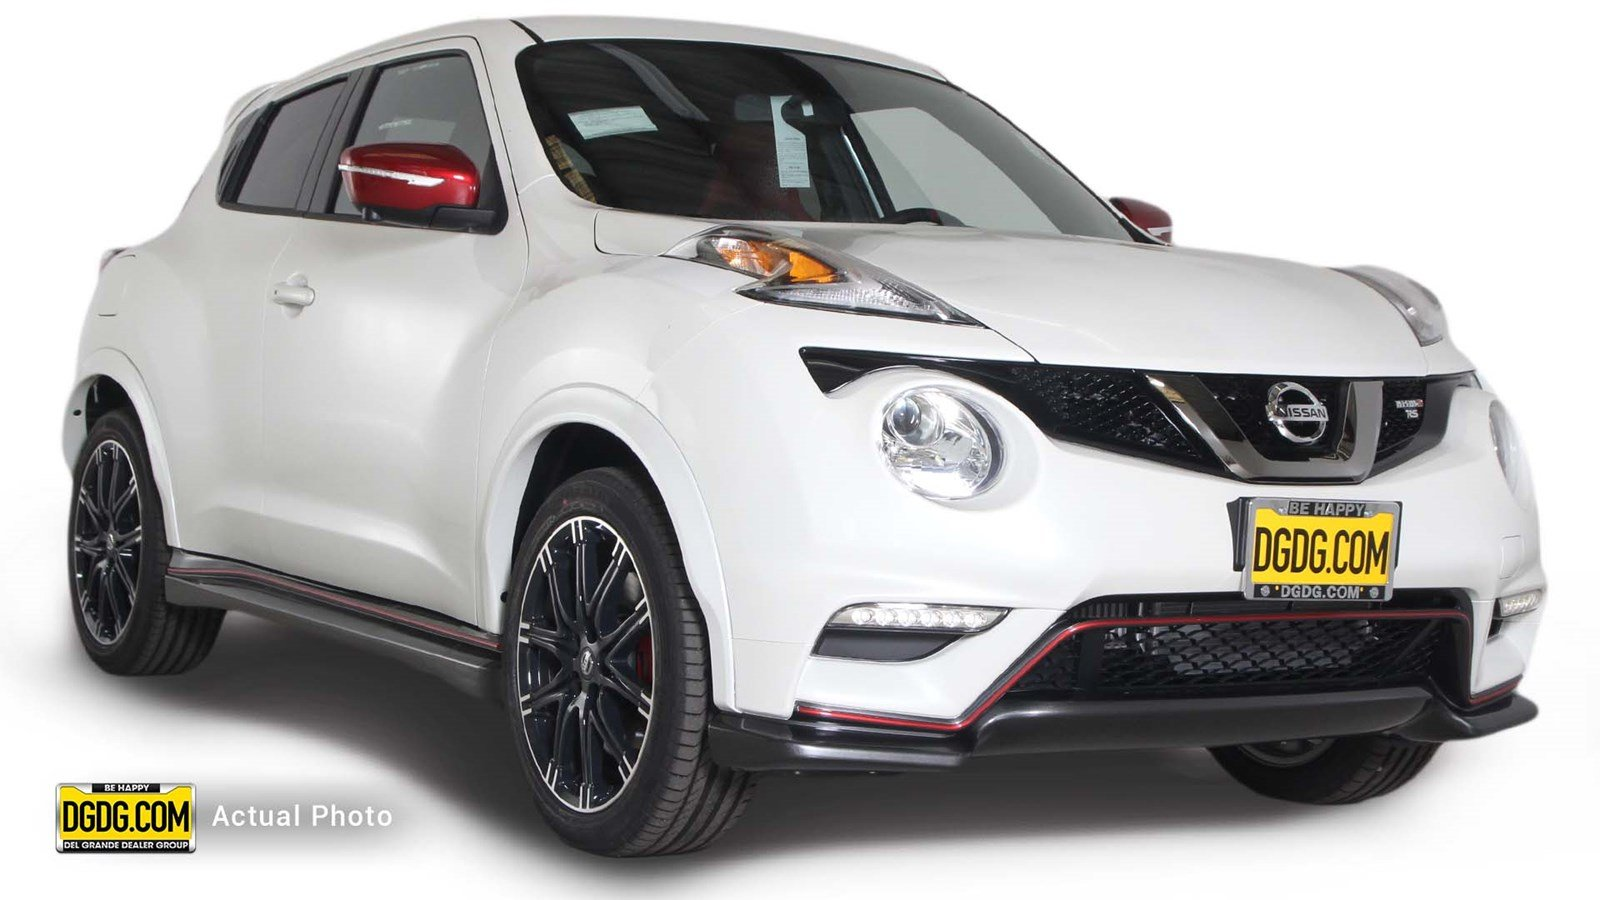 new 2017 nissan juke nismo rs sport utility in sunnyvale n12007 nissan sunnyvale. Black Bedroom Furniture Sets. Home Design Ideas